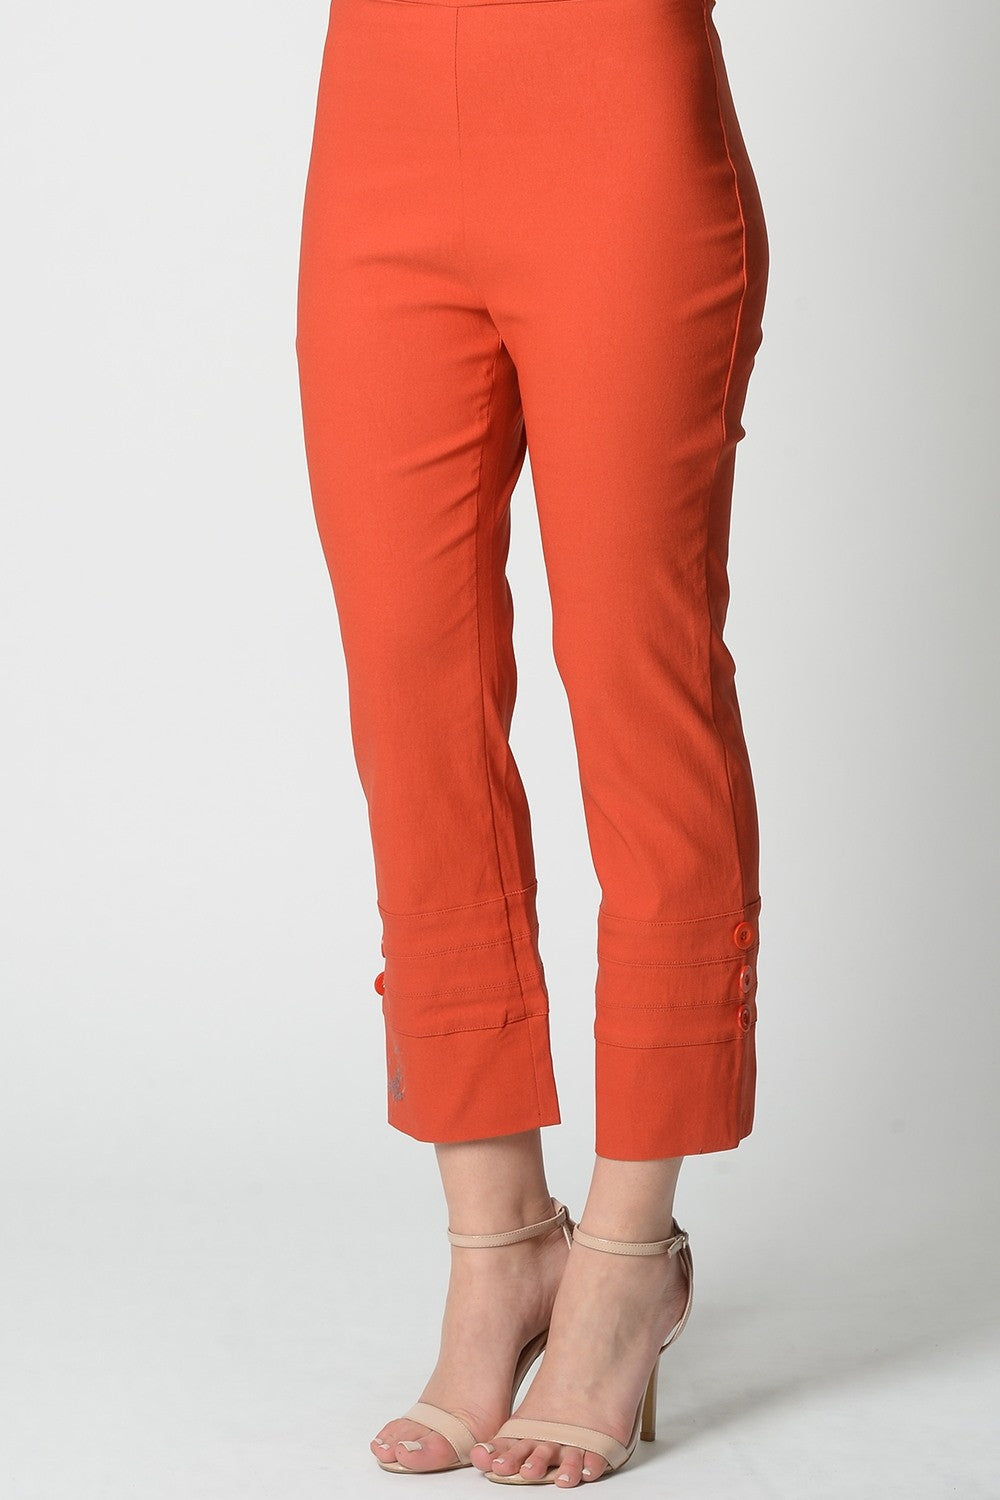 Orange 3 Button 7/8 Pant - at I Love Tunics @ www.ilovetunics.com = Number One! Tunics Destination